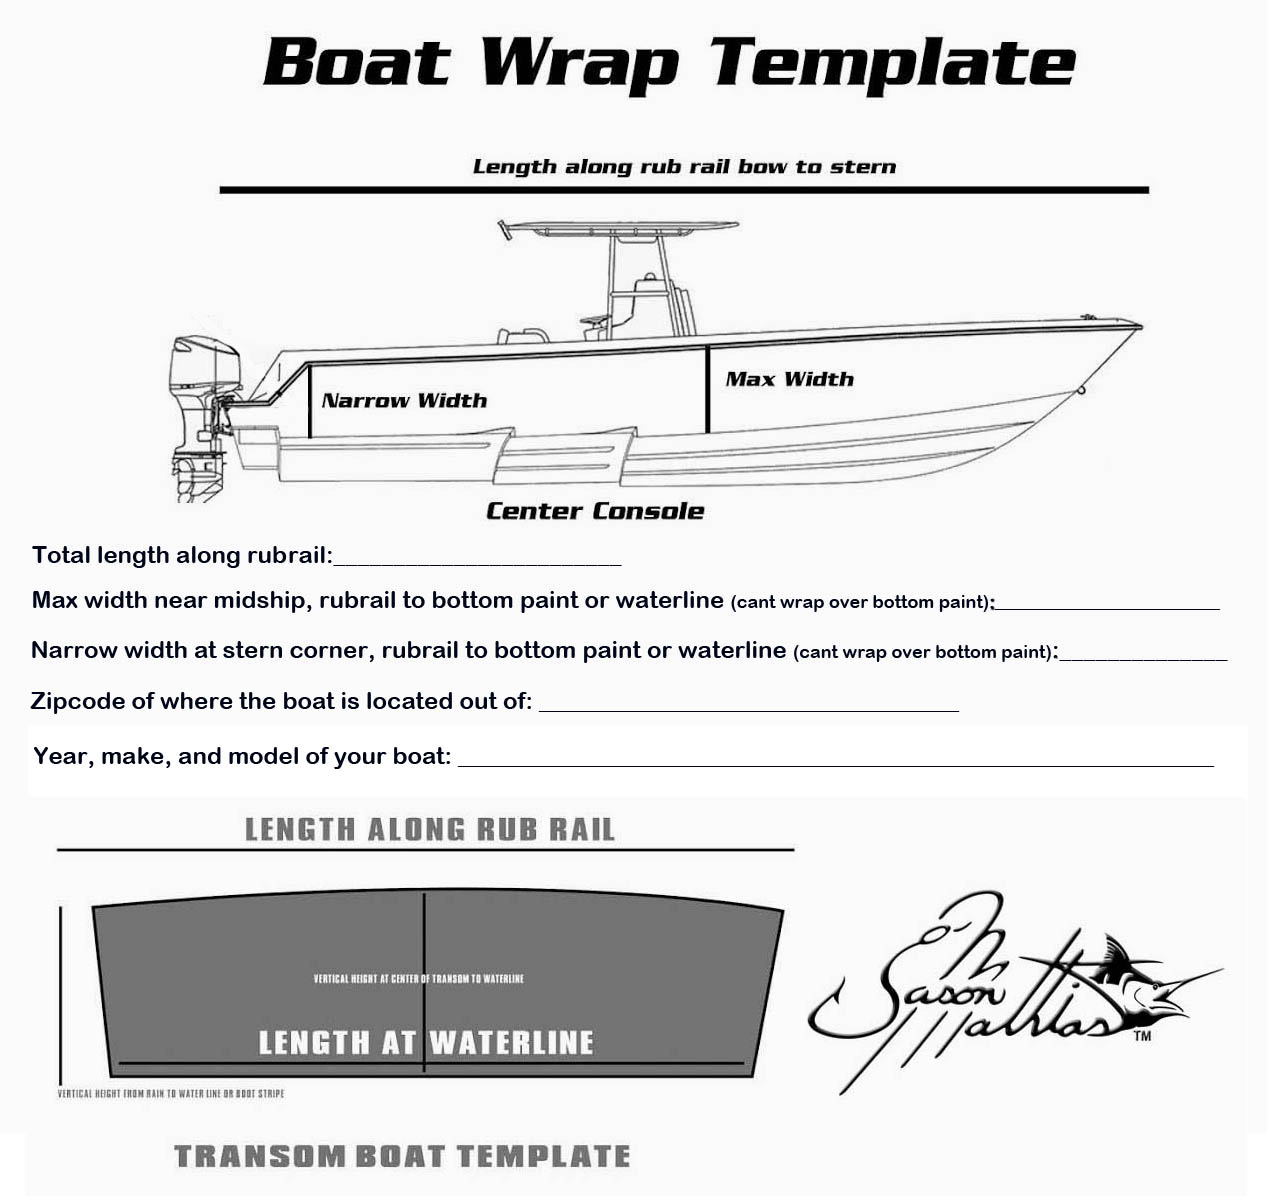 boat-wrap-measurements-and-informaion-for-quote.jpg